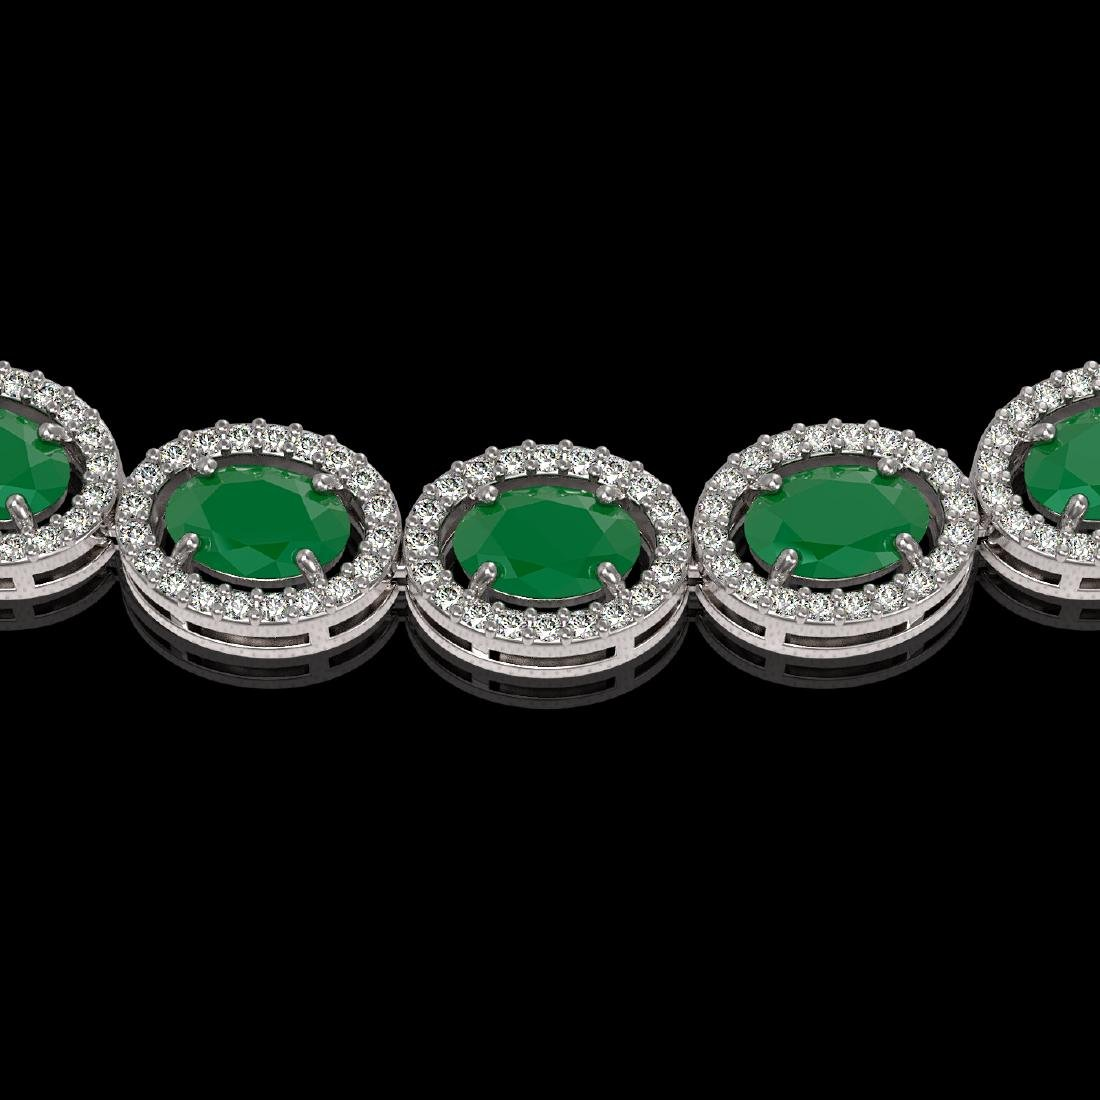 34.11 CTW Emerald & Diamond Halo Necklace 10K White - 3